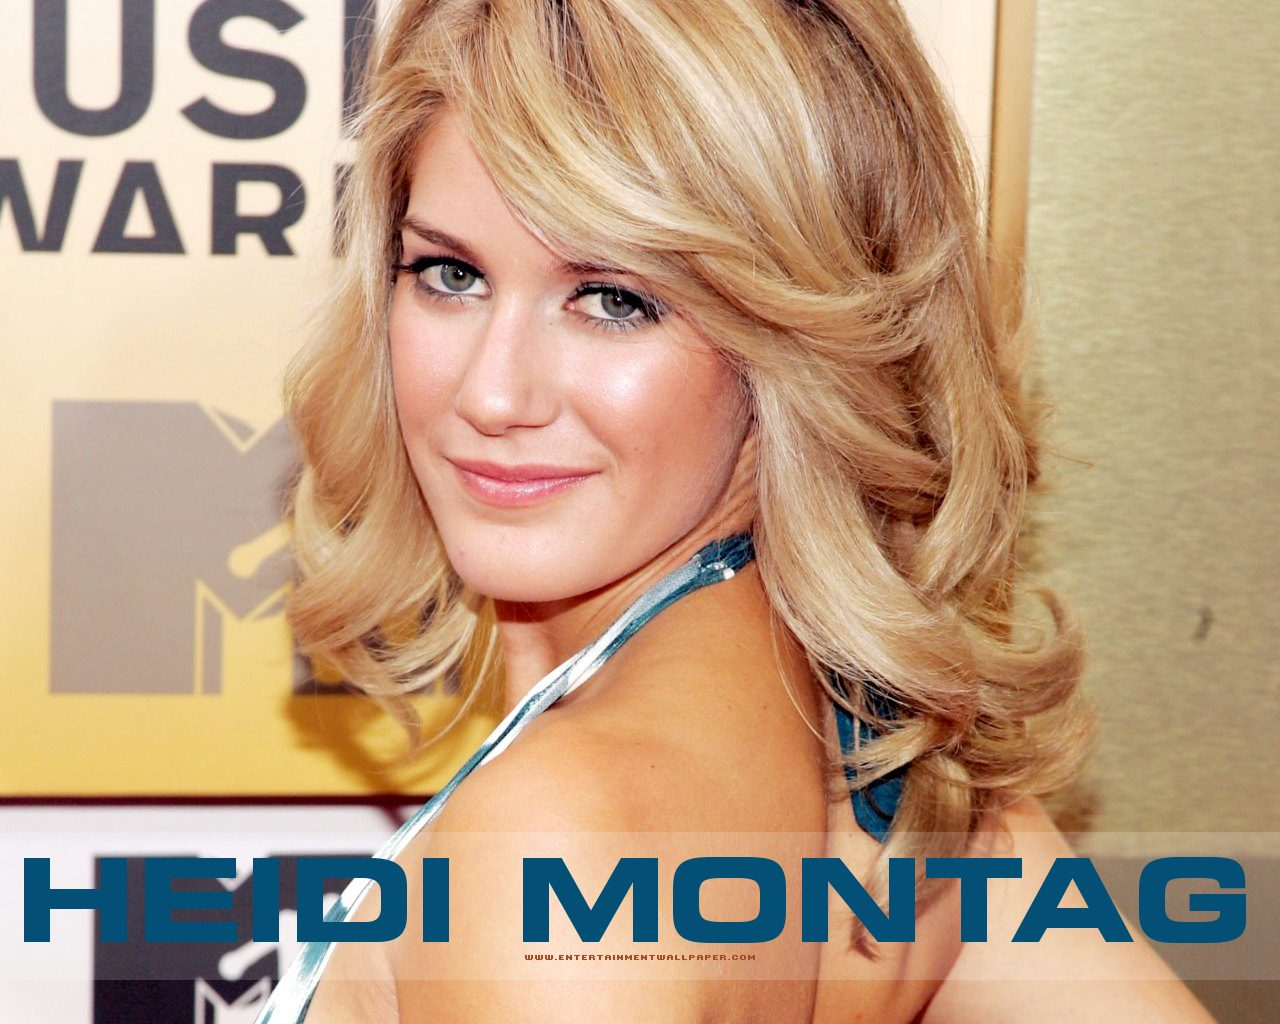 Lovely Wallpapers Heidi Montag Hd Wallpapers 2012